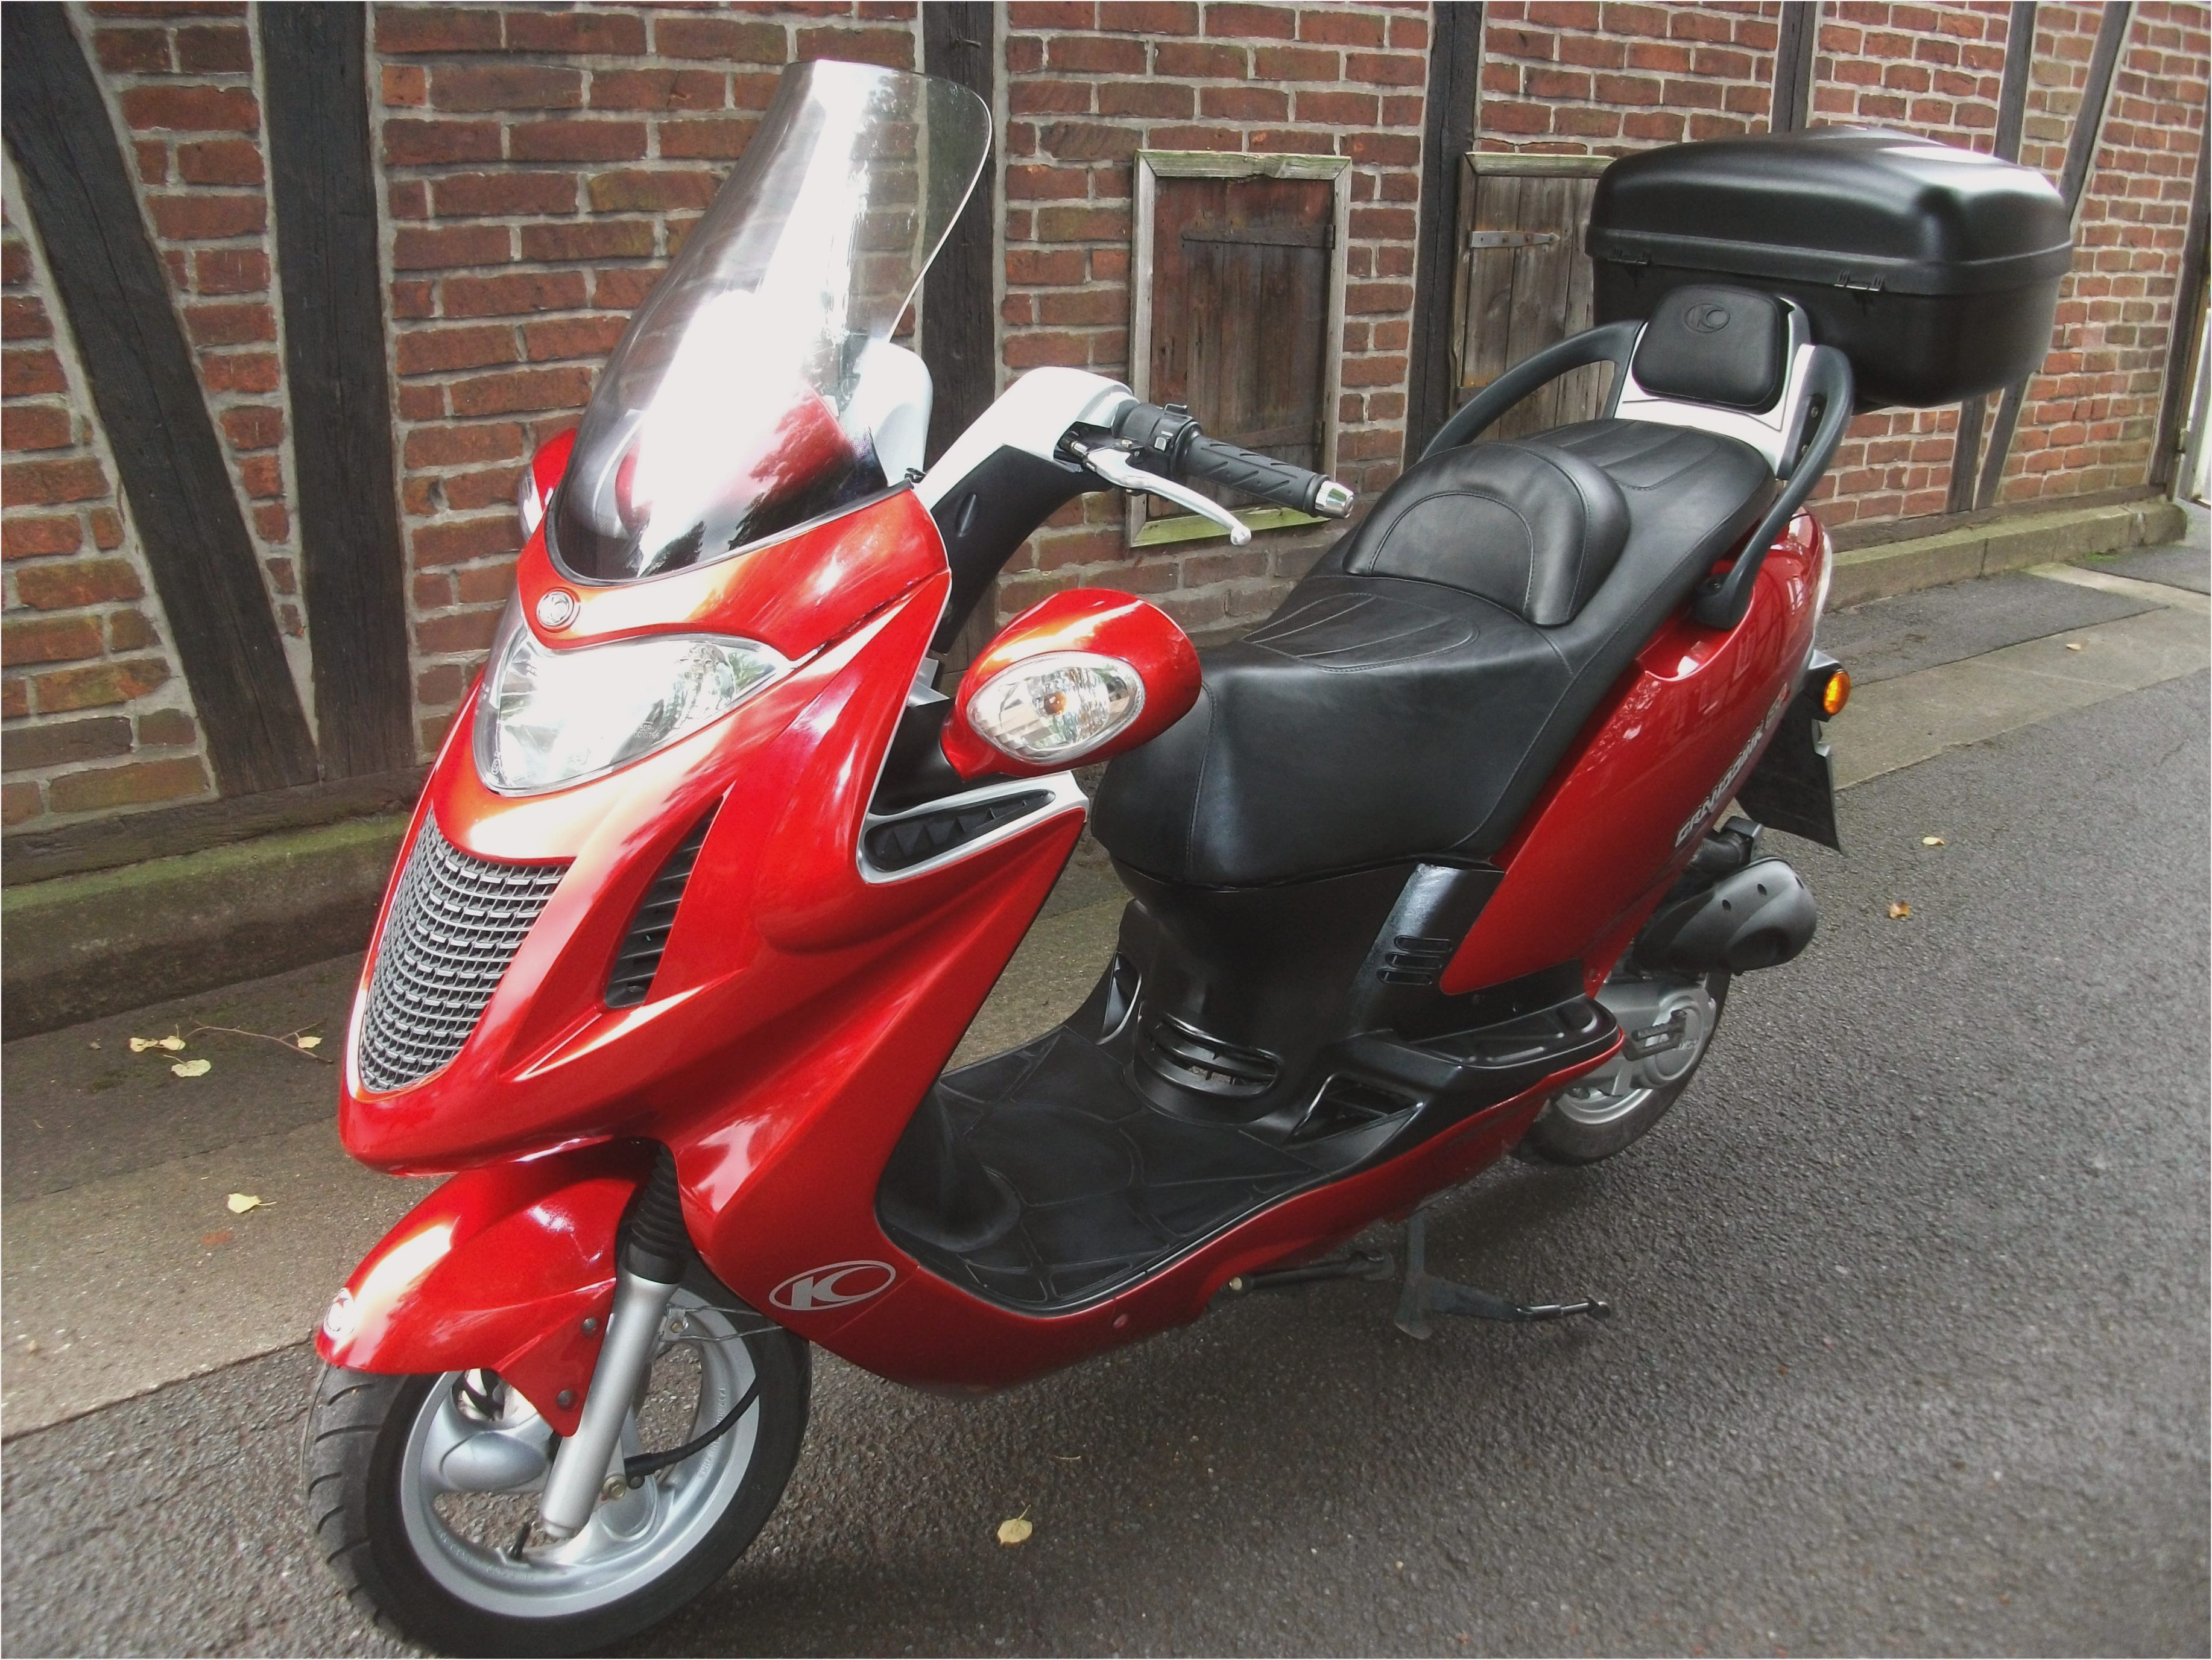 Kymco Grand Dink S 125 images #102188